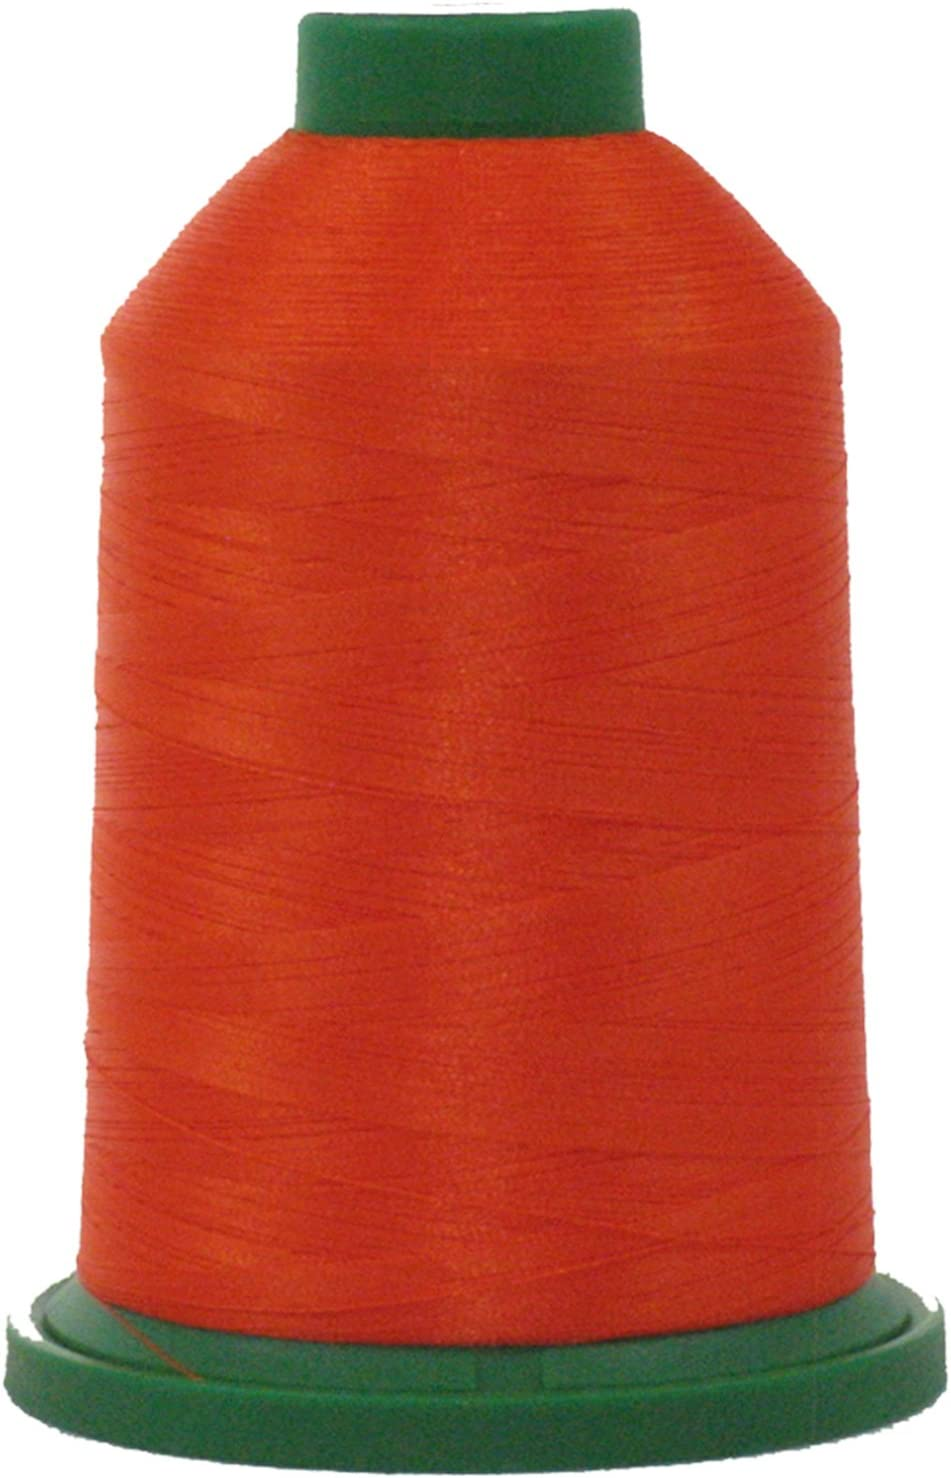 Isacord Embroidery Thread 5000m 1200-1322 1306